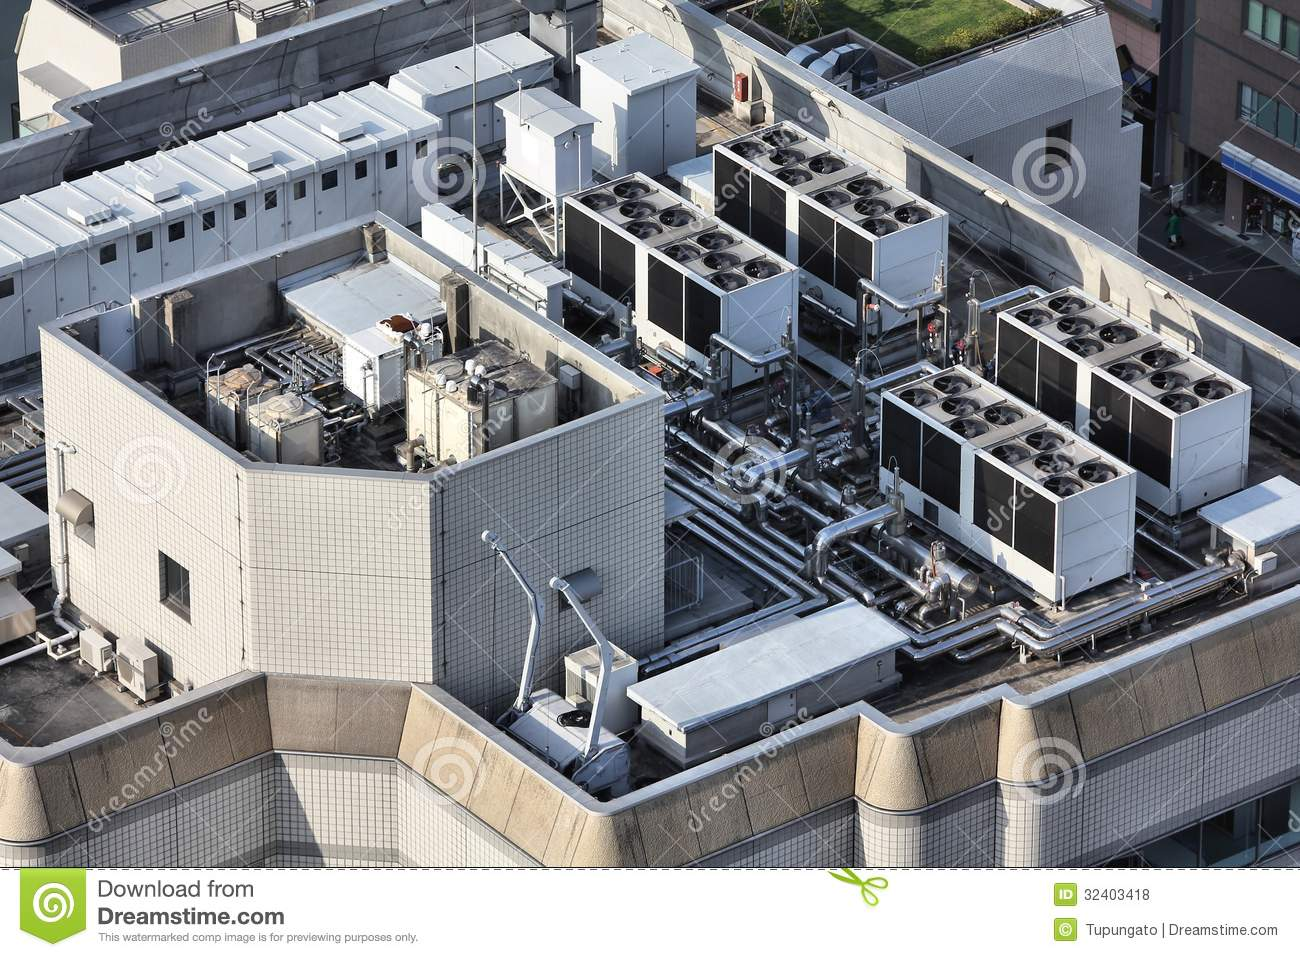 Industrial Building Ventiltors : Industrial ventilation stock photo image of rooftop